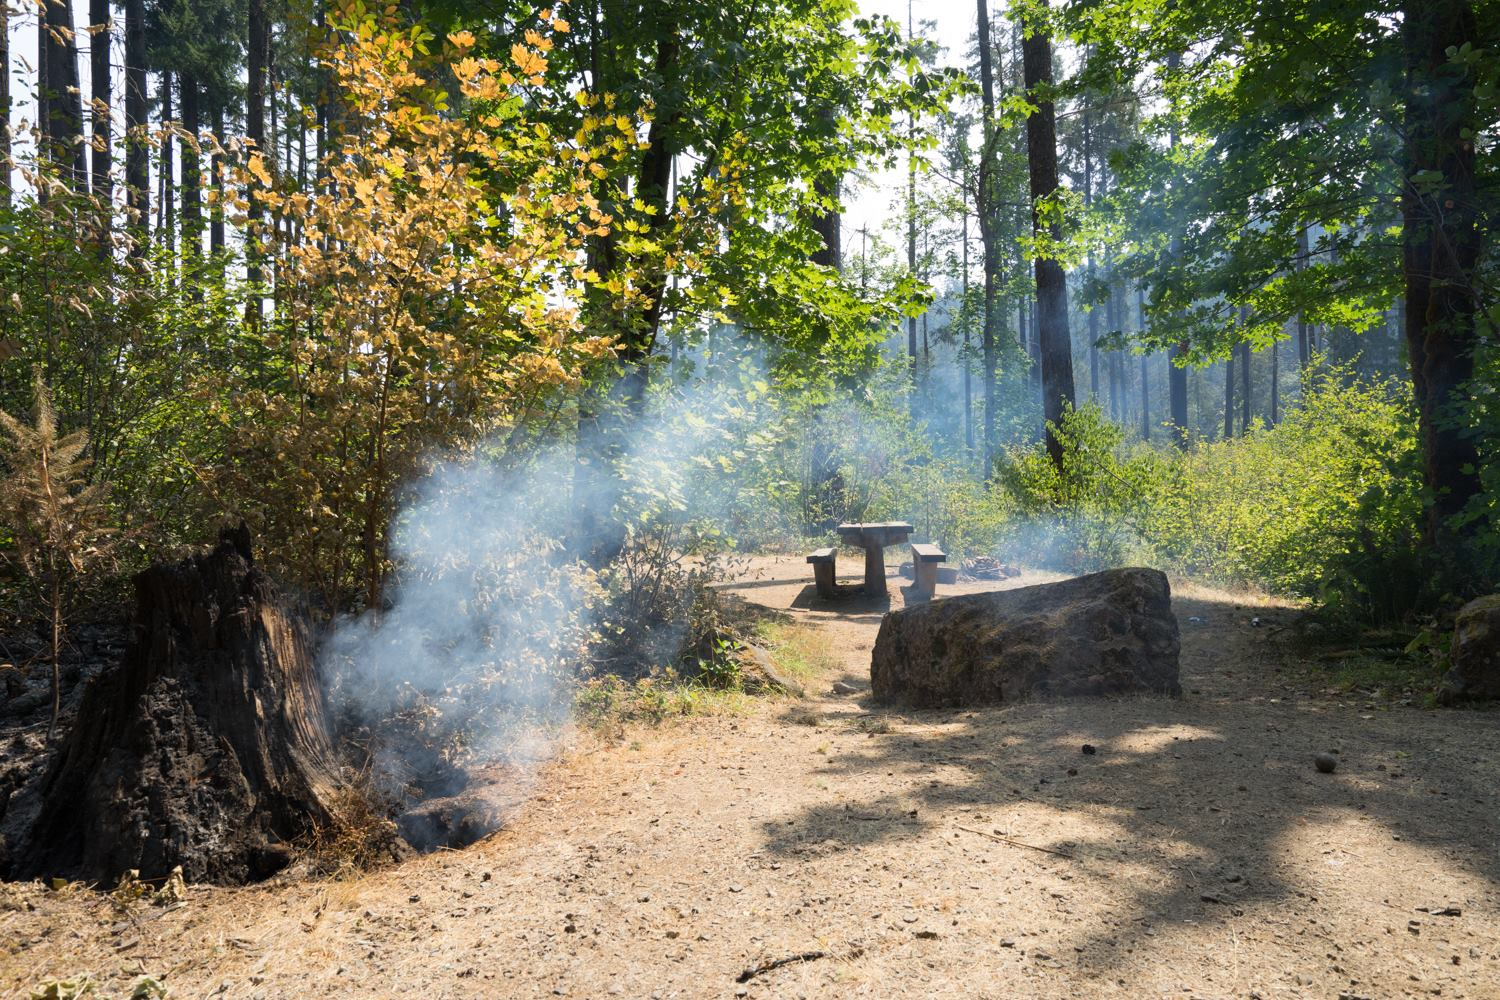 """Bedrock Campground along Fall Creek after the Jones Fire passed through. The fire burnt mostly brush and small trees,"" the USDA Forest Service said."